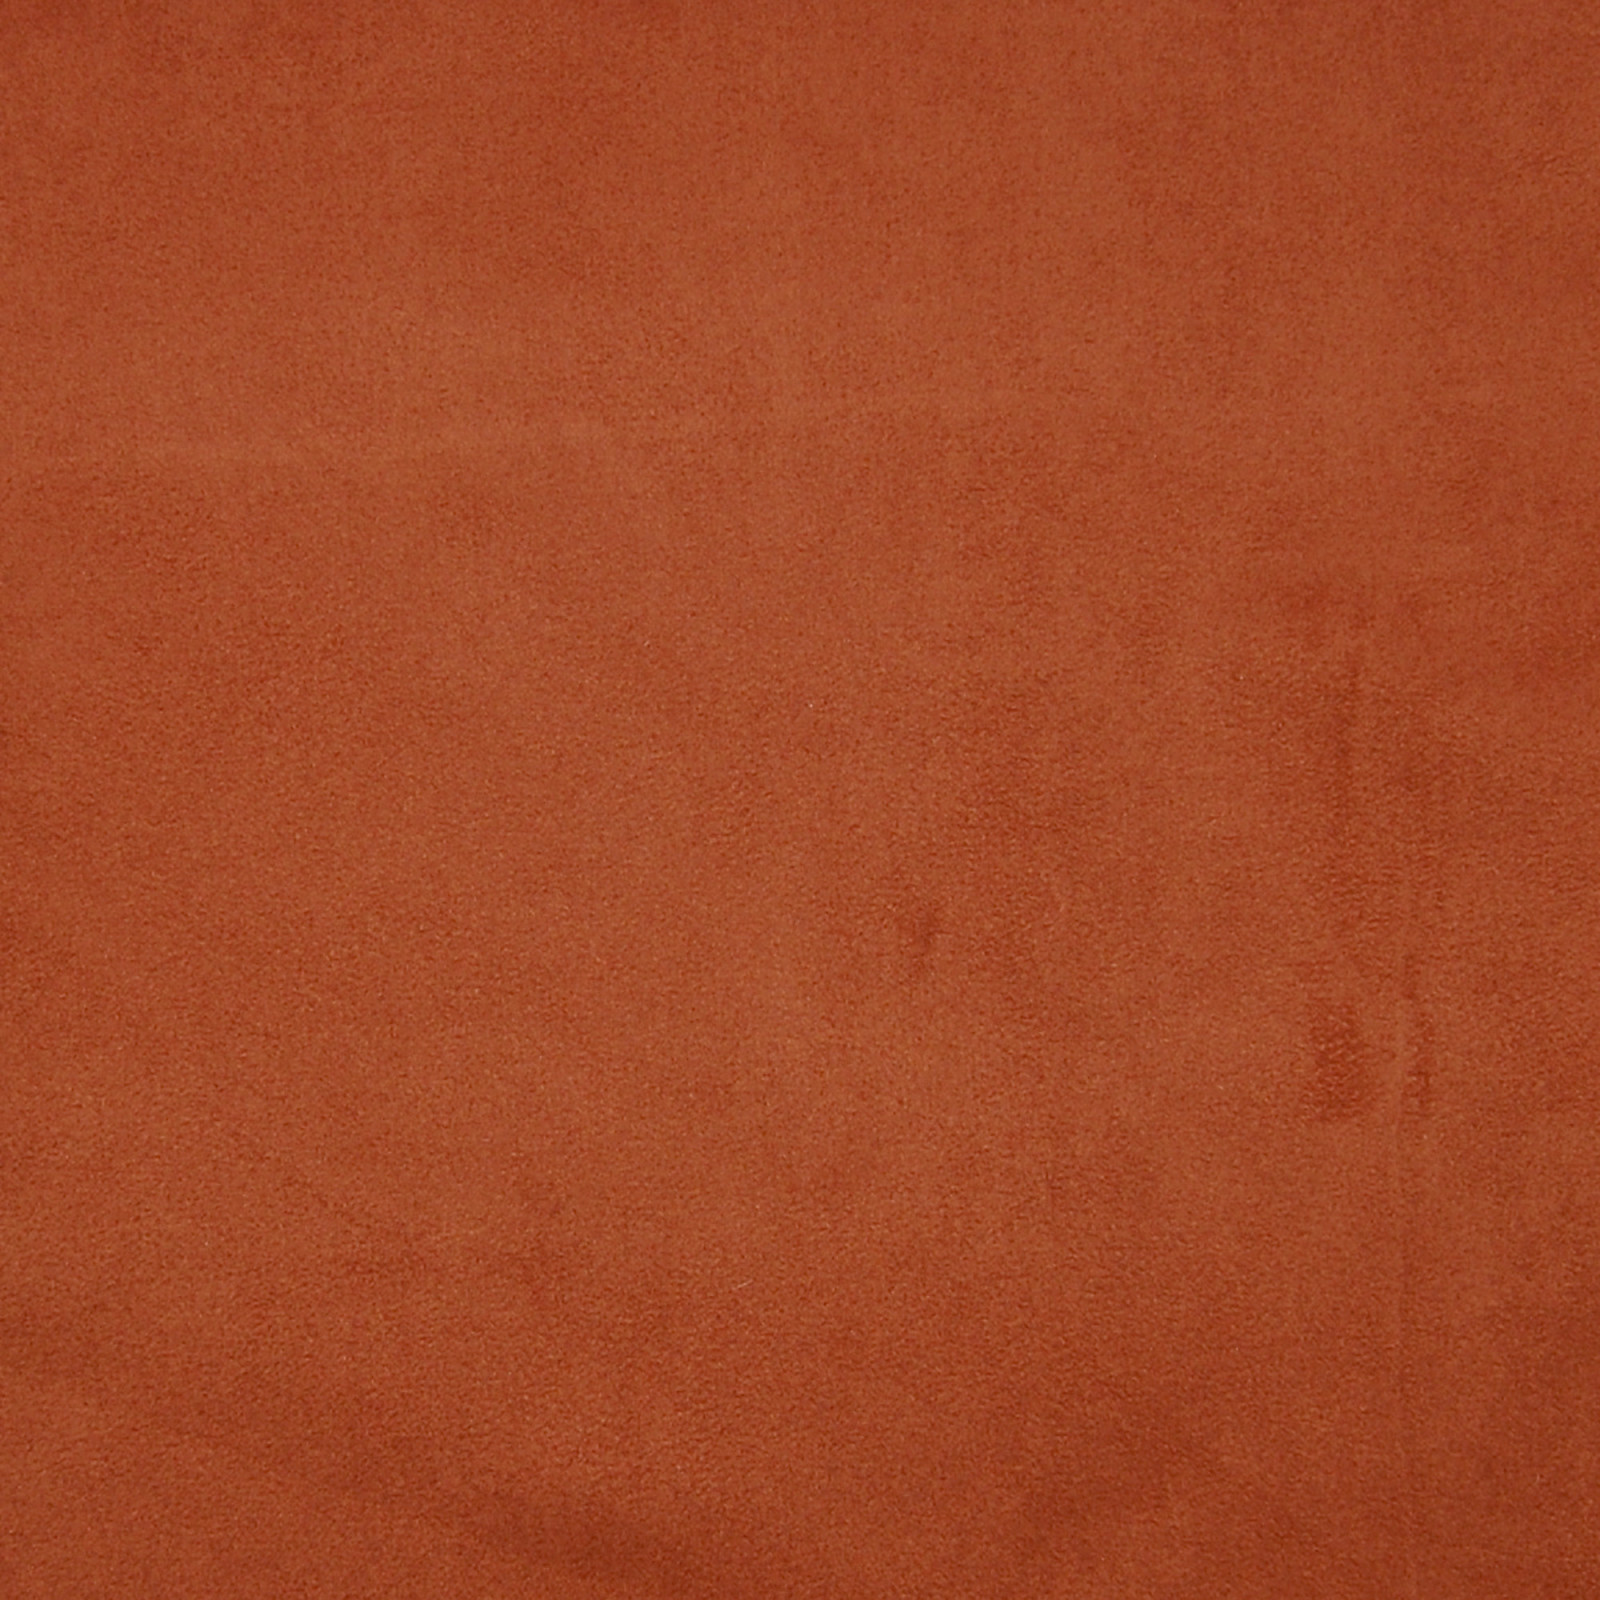 Terracotta Orange And Red Solid Suede Upholstery Fabric